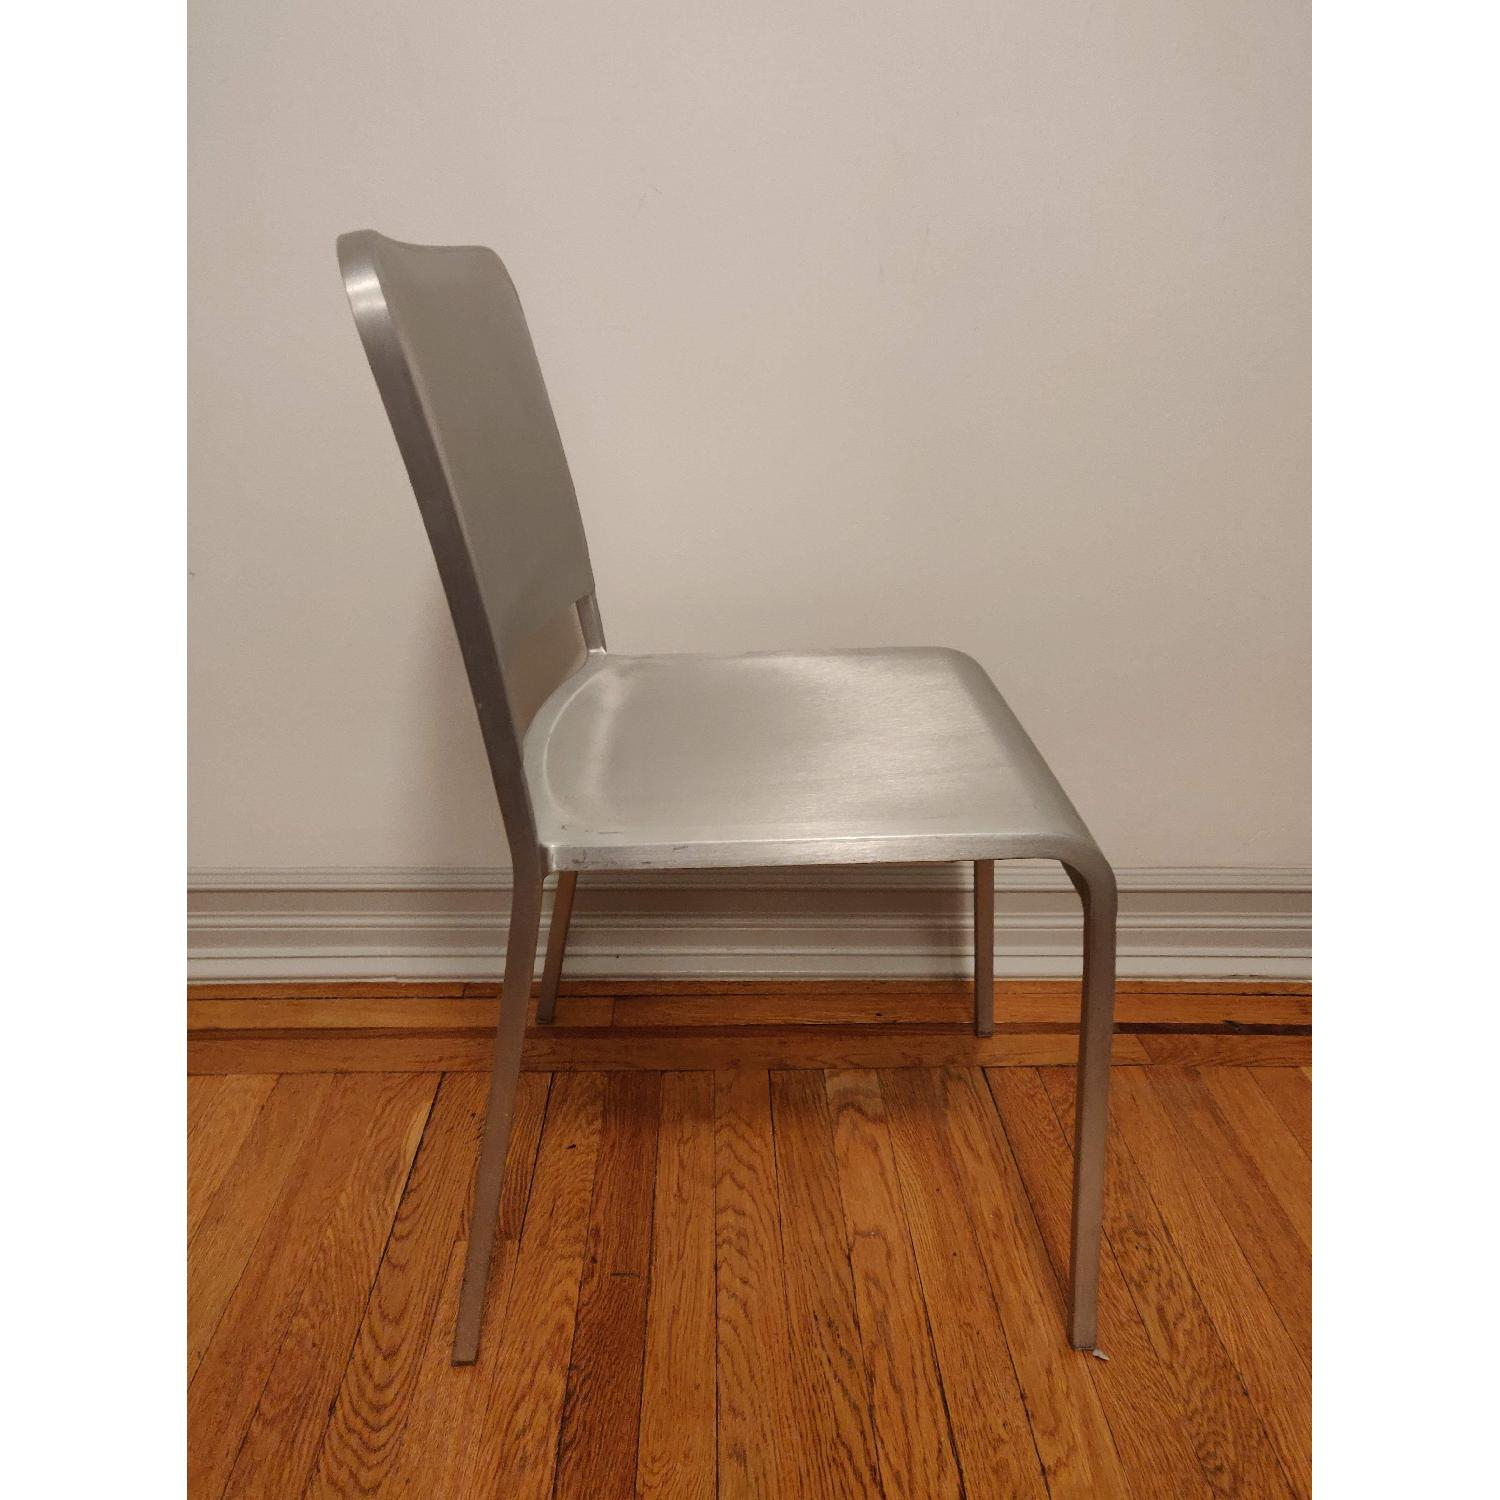 Emeco 20-06 Chairs by Norman Foster - image-2